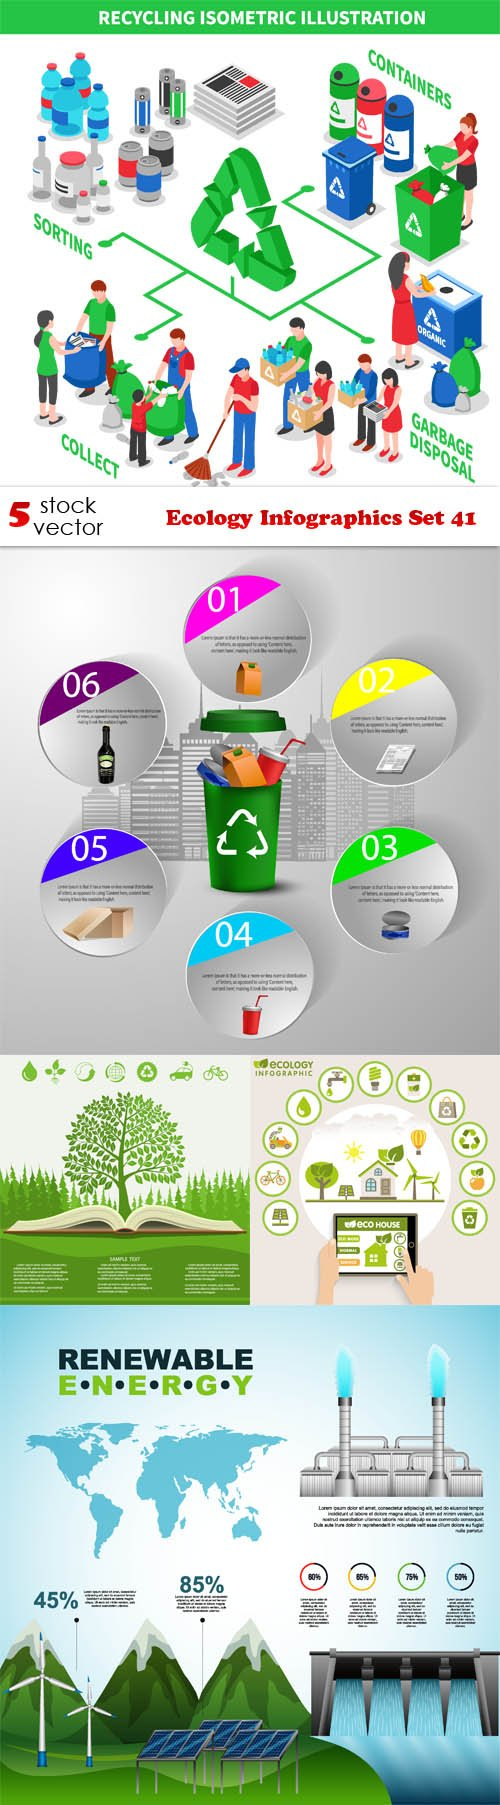 Vectors - Ecology Infographics Set 41